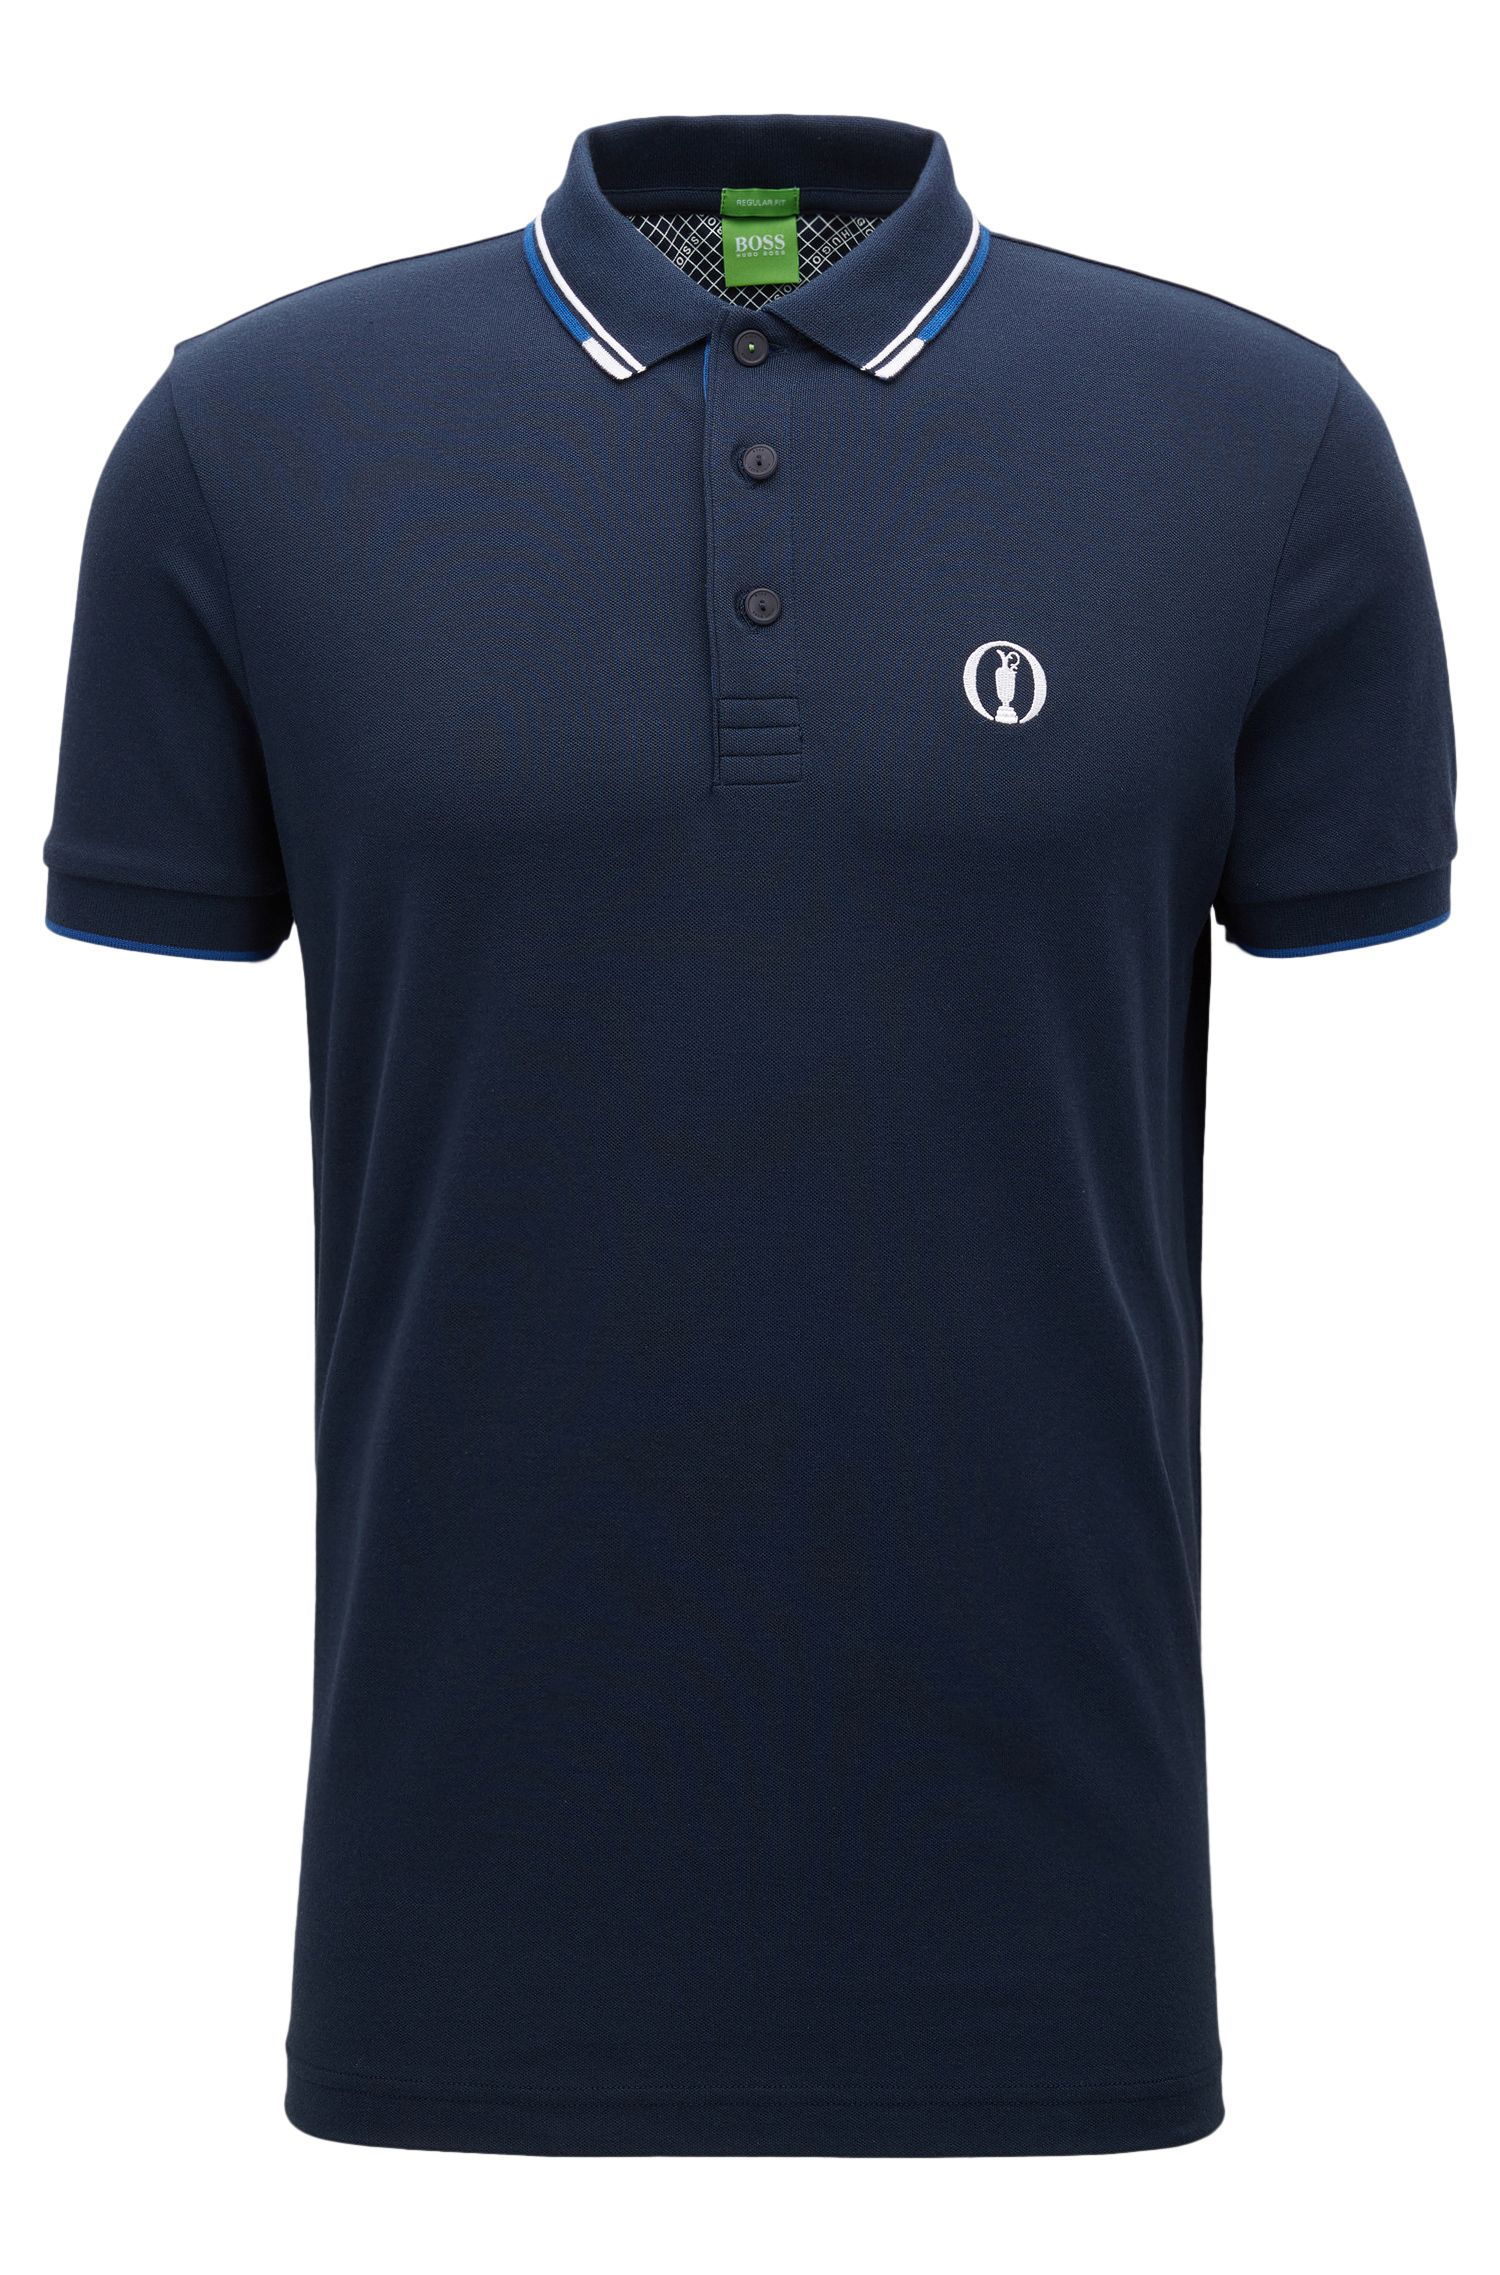 Poloshirt aus Baumwoll-Mix aus The Open Collection